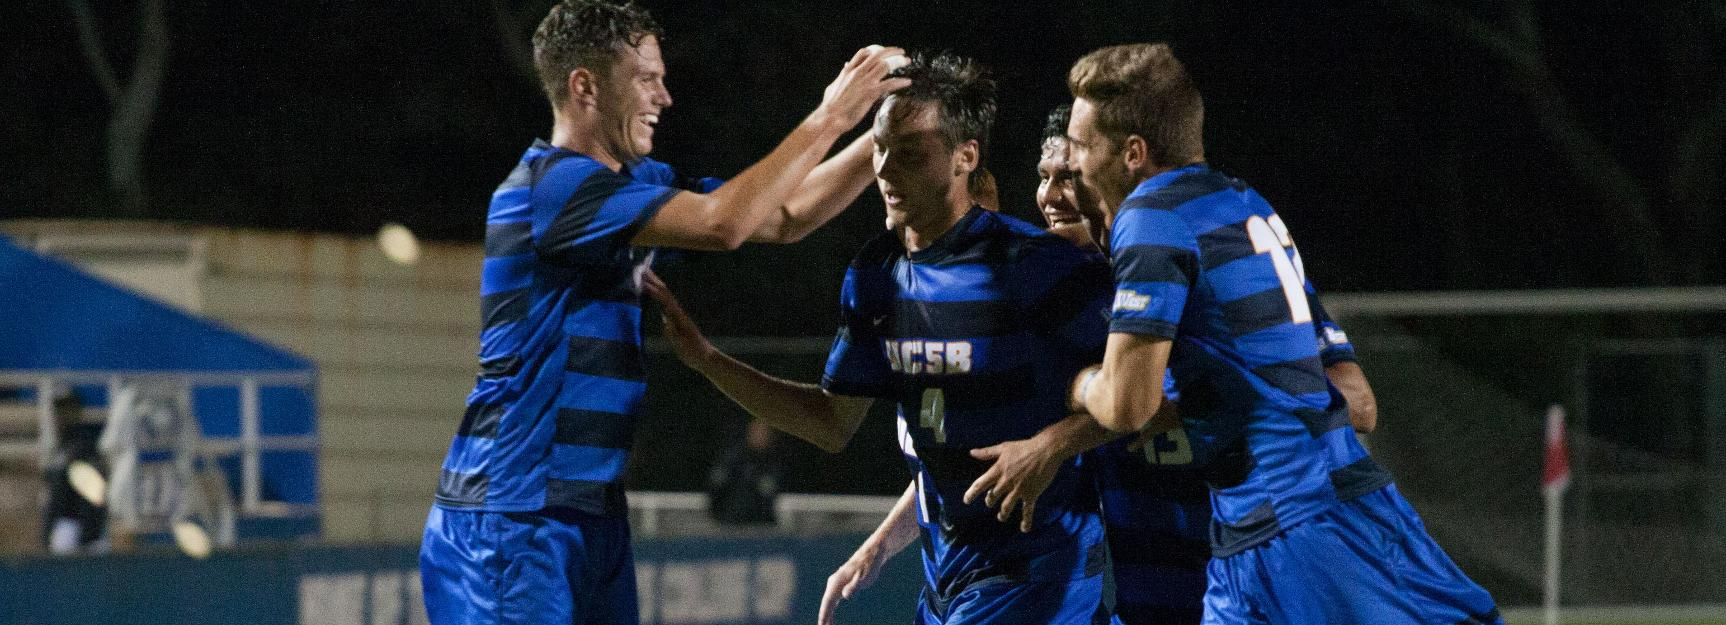 Gauchos Earn No. 10 National Seed, Will Receive First Round Bye in NCAA Tournament